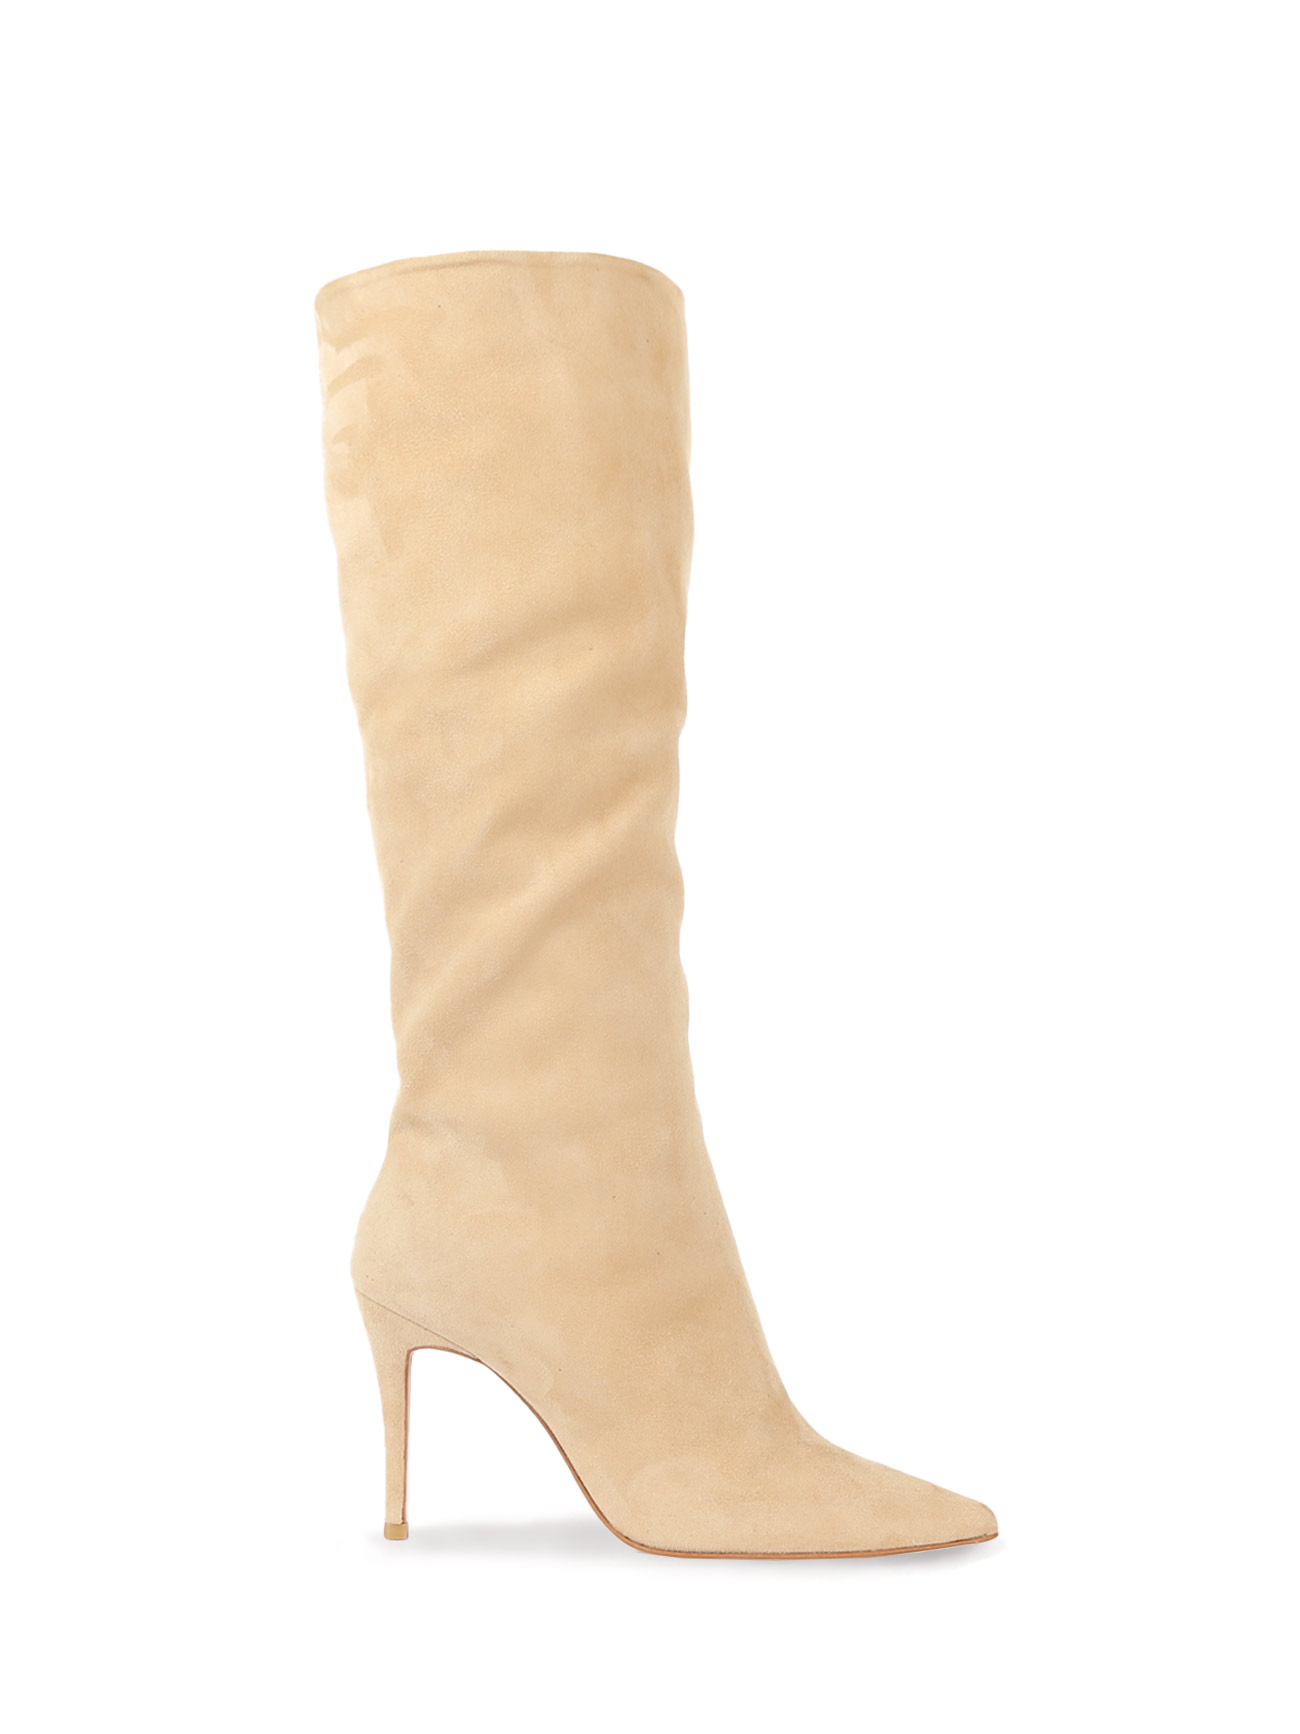 SUZAN LEATHER KNEE BOOTS (7cm, 9cm) - LEMON BEIGE